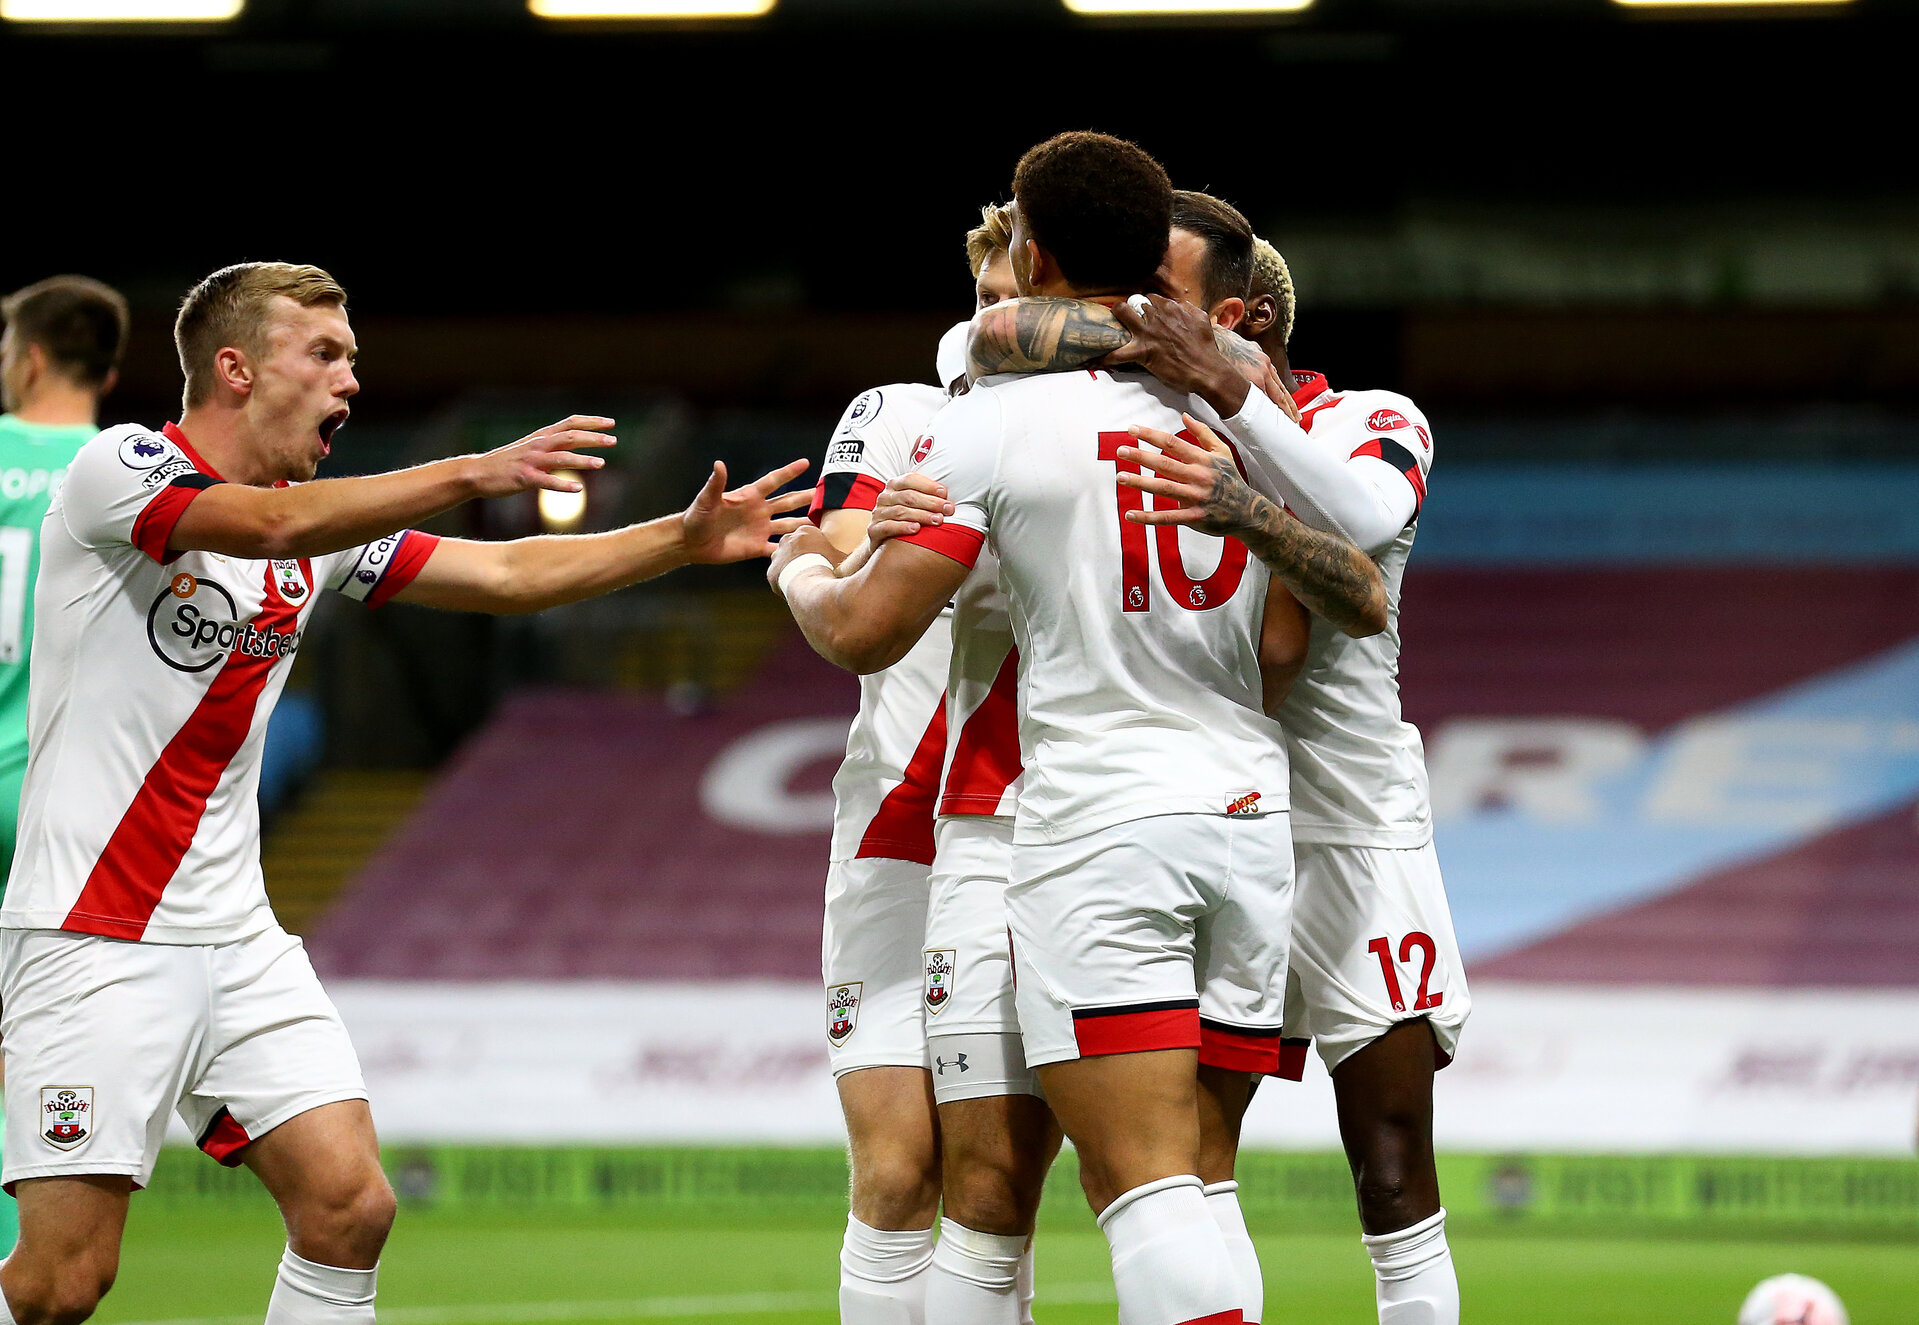 BURNLEY, ENGLAND - SEPTEMBER 26: Southampton players celebrating after Danny Ings scores the opening goal during the Premier League match between Burnley and Southampton at Turf Moor on September 26, 2020 in Burnley, United Kingdom. Sporting stadiums around the UK remain under strict restrictions due to the Coronavirus Pandemic as Government social distancing laws prohibit fans inside venues resulting in games being played behind closed doors. (Photo by Matt Watson/Southampton FC via Getty Images)